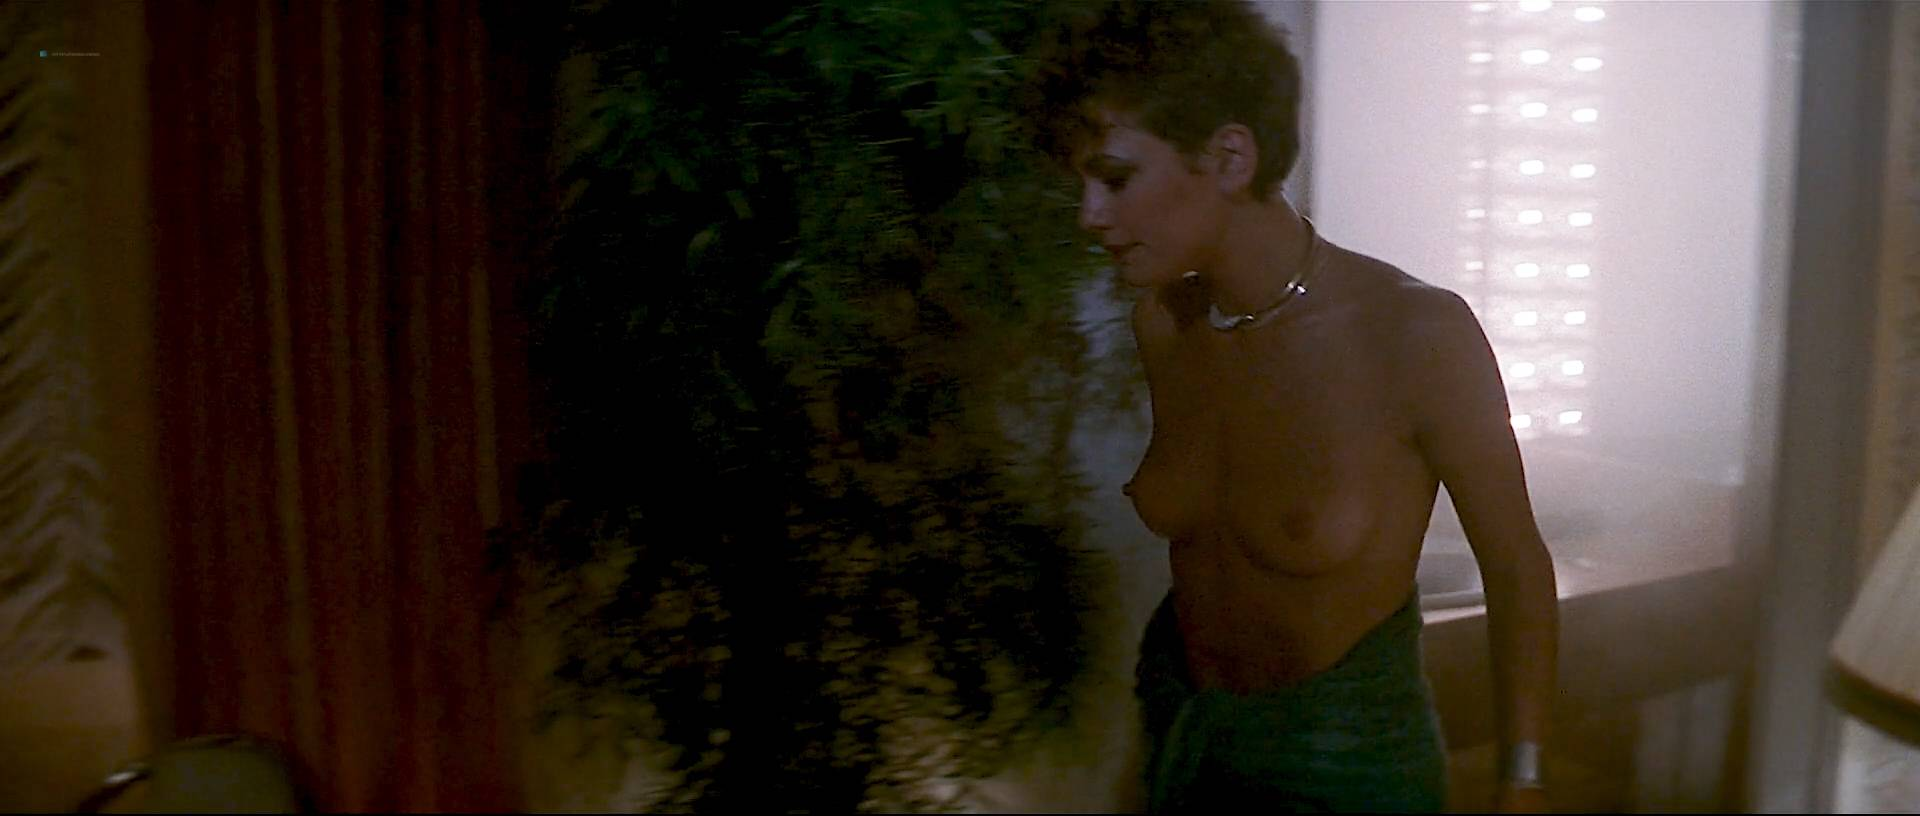 Kirstie Alley Hot And Cec Verrell Nude Topless - Runaway -5464